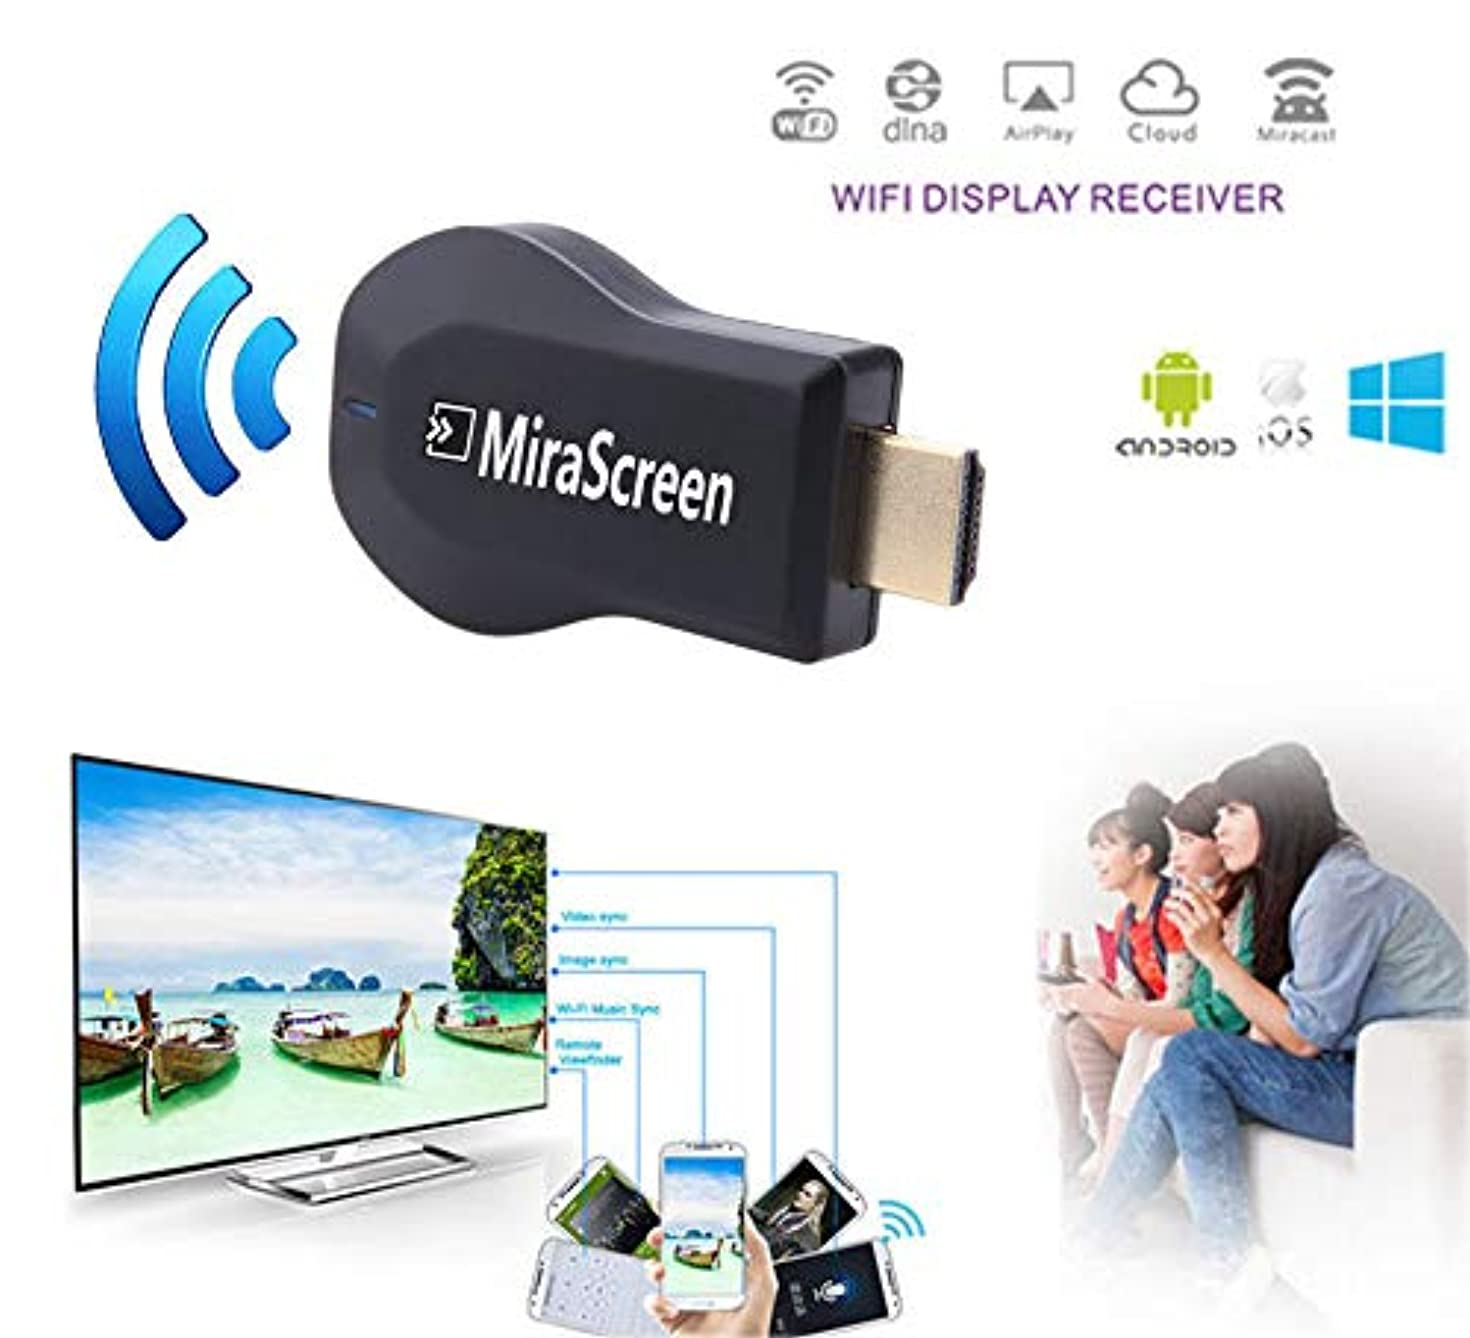 Wireless WiFi Display Dongle Screen Mirroring Adapter Airplay DLNA Miracast 1080P Video Receiver Phone to HDMI TV for iPhone Xs MAX XR X 6 7 8 Plus iOS/Android/HDTV/Projector